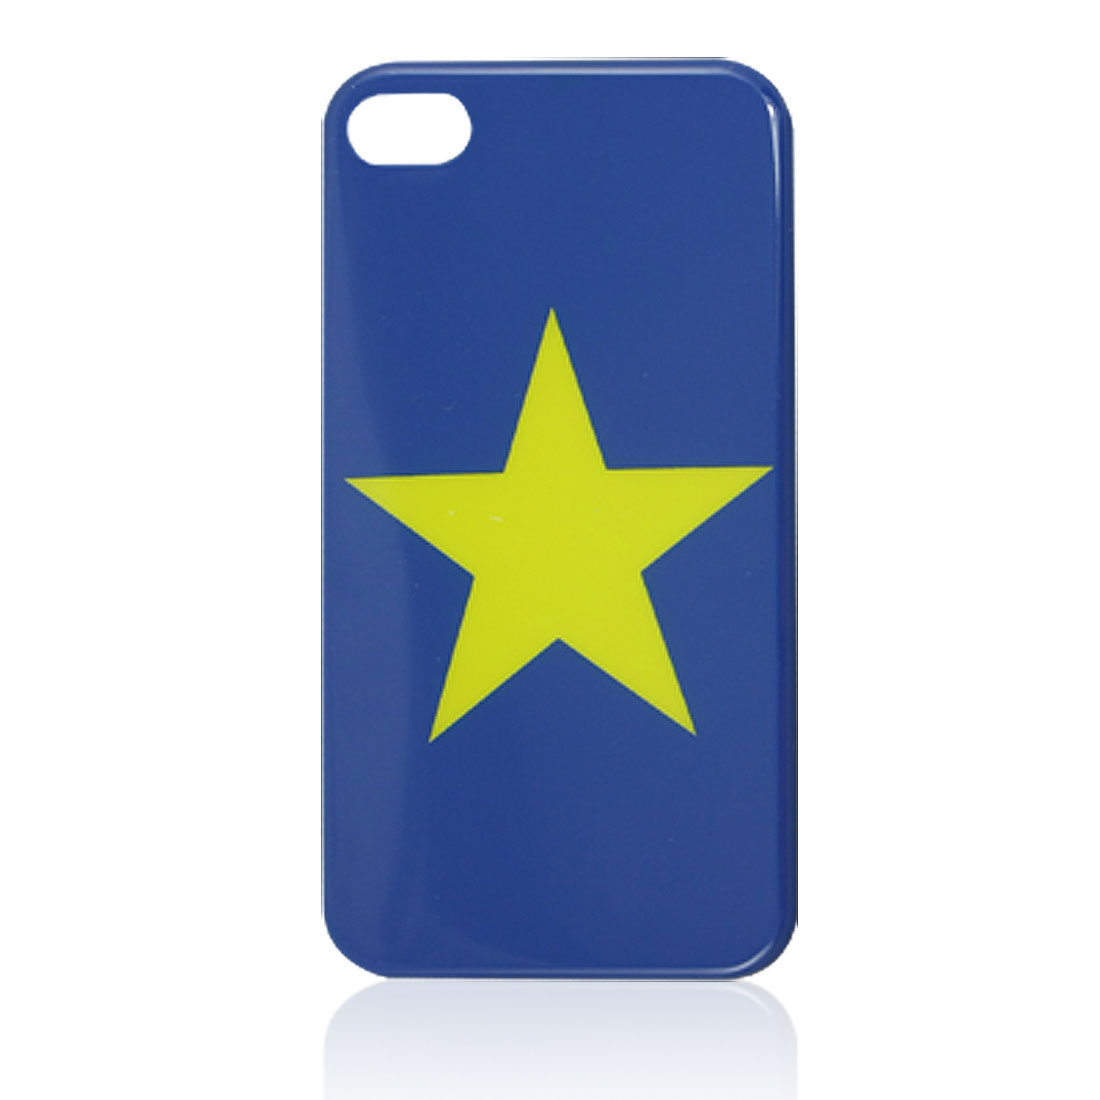 IMD Yellow Star Print Blue Plastic Back Case Shell for iPhone 4 4G 4S